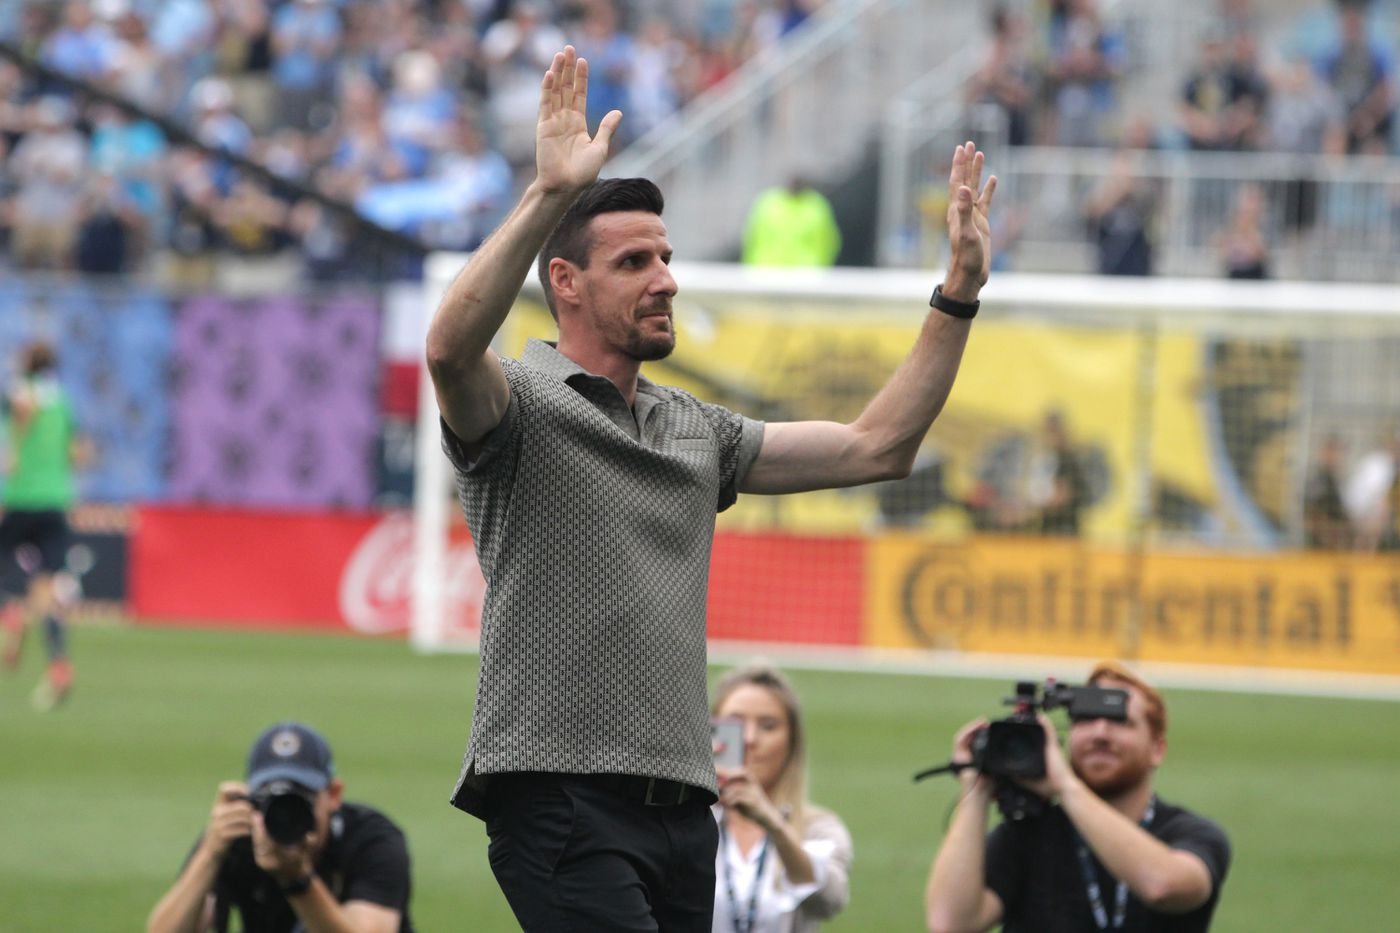 Sébastien Le Toux is 'here forever' with Union ring of honor induction